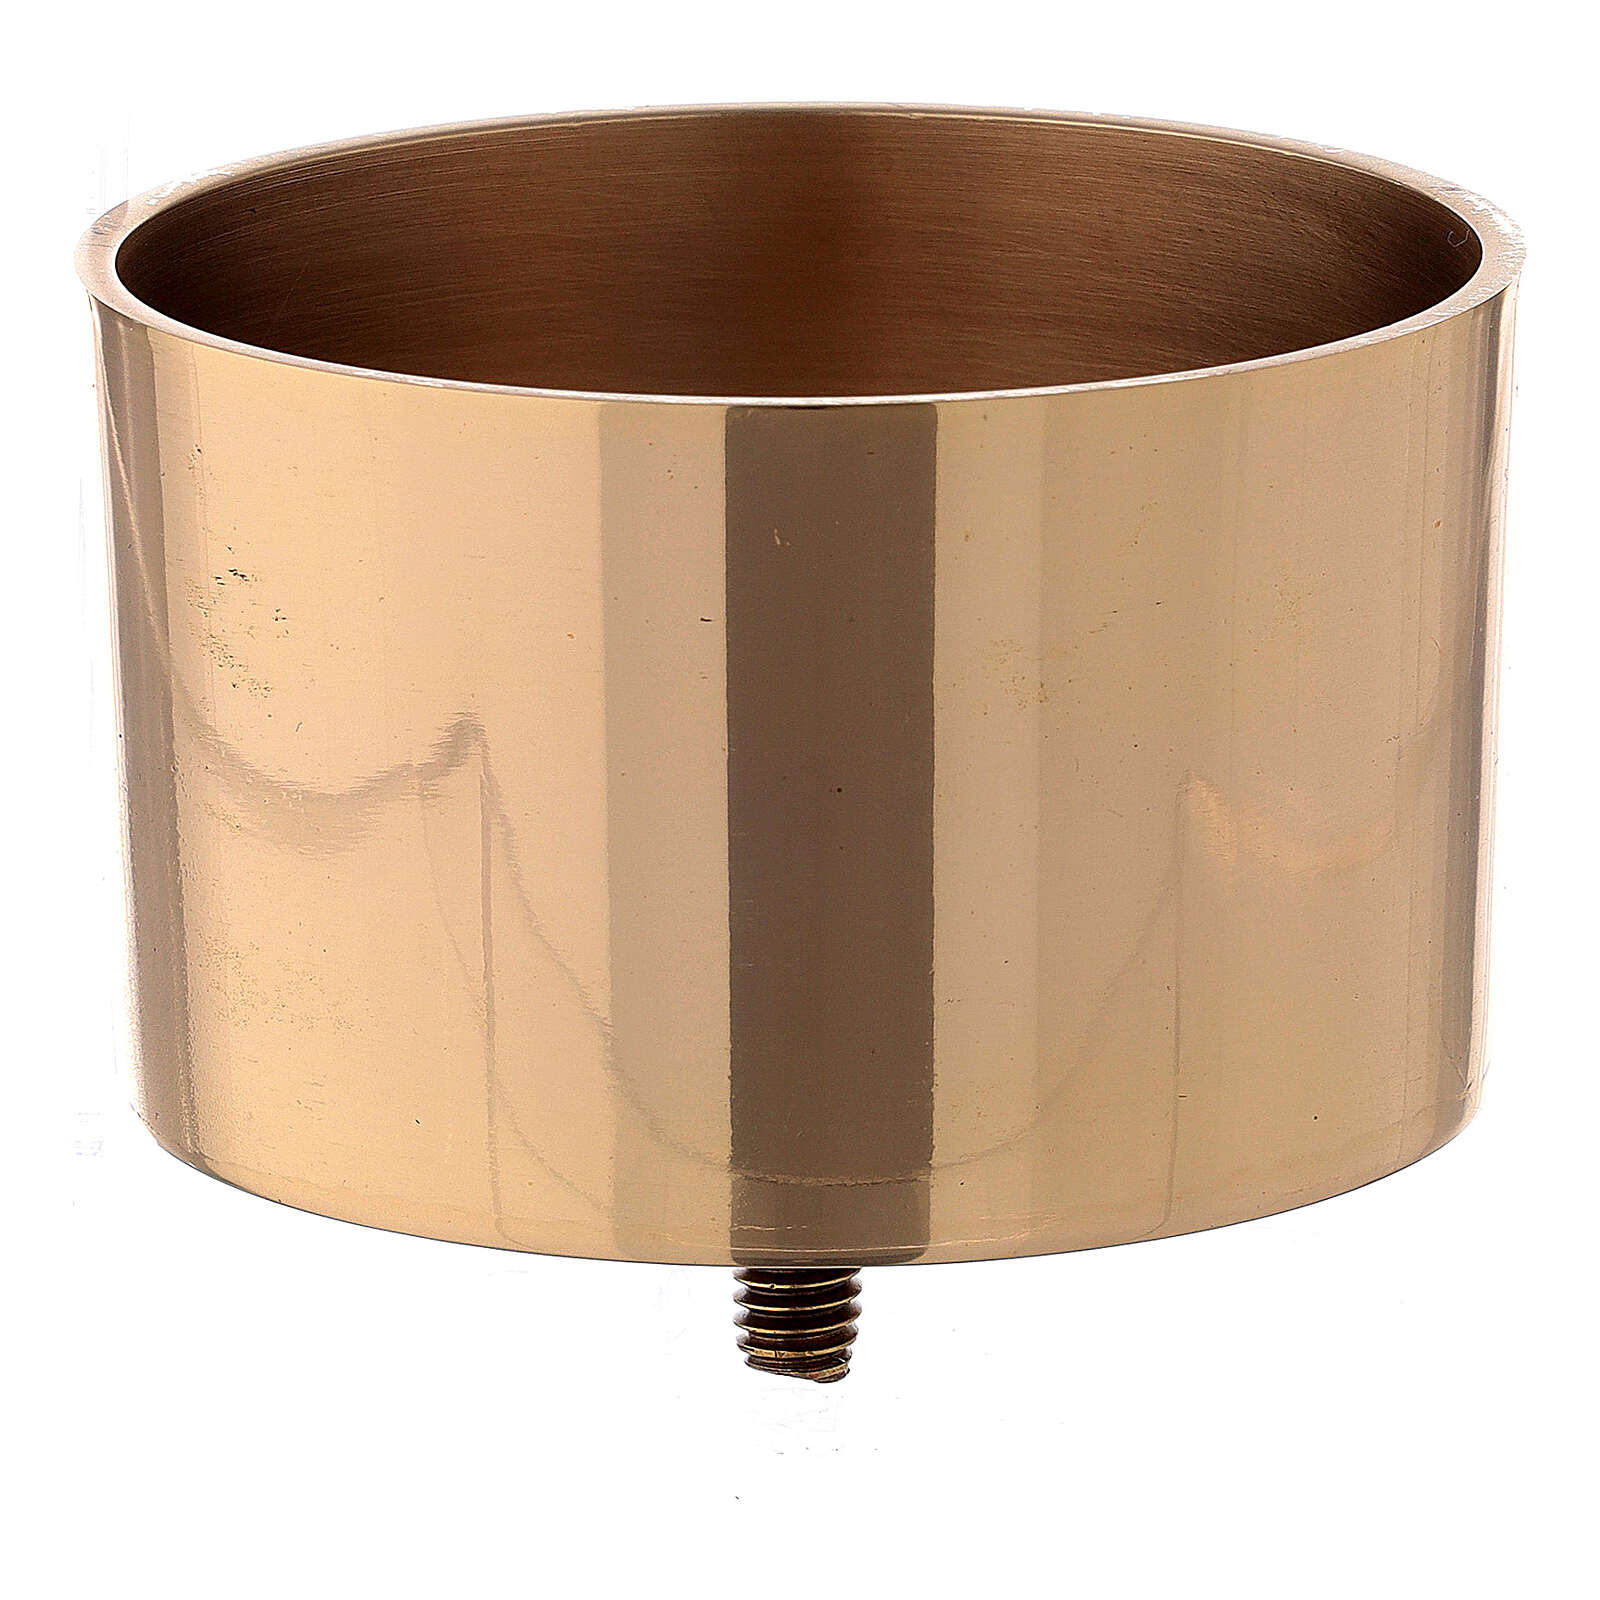 Candlestick screw socket 3 1/2 in gold plated brass 4